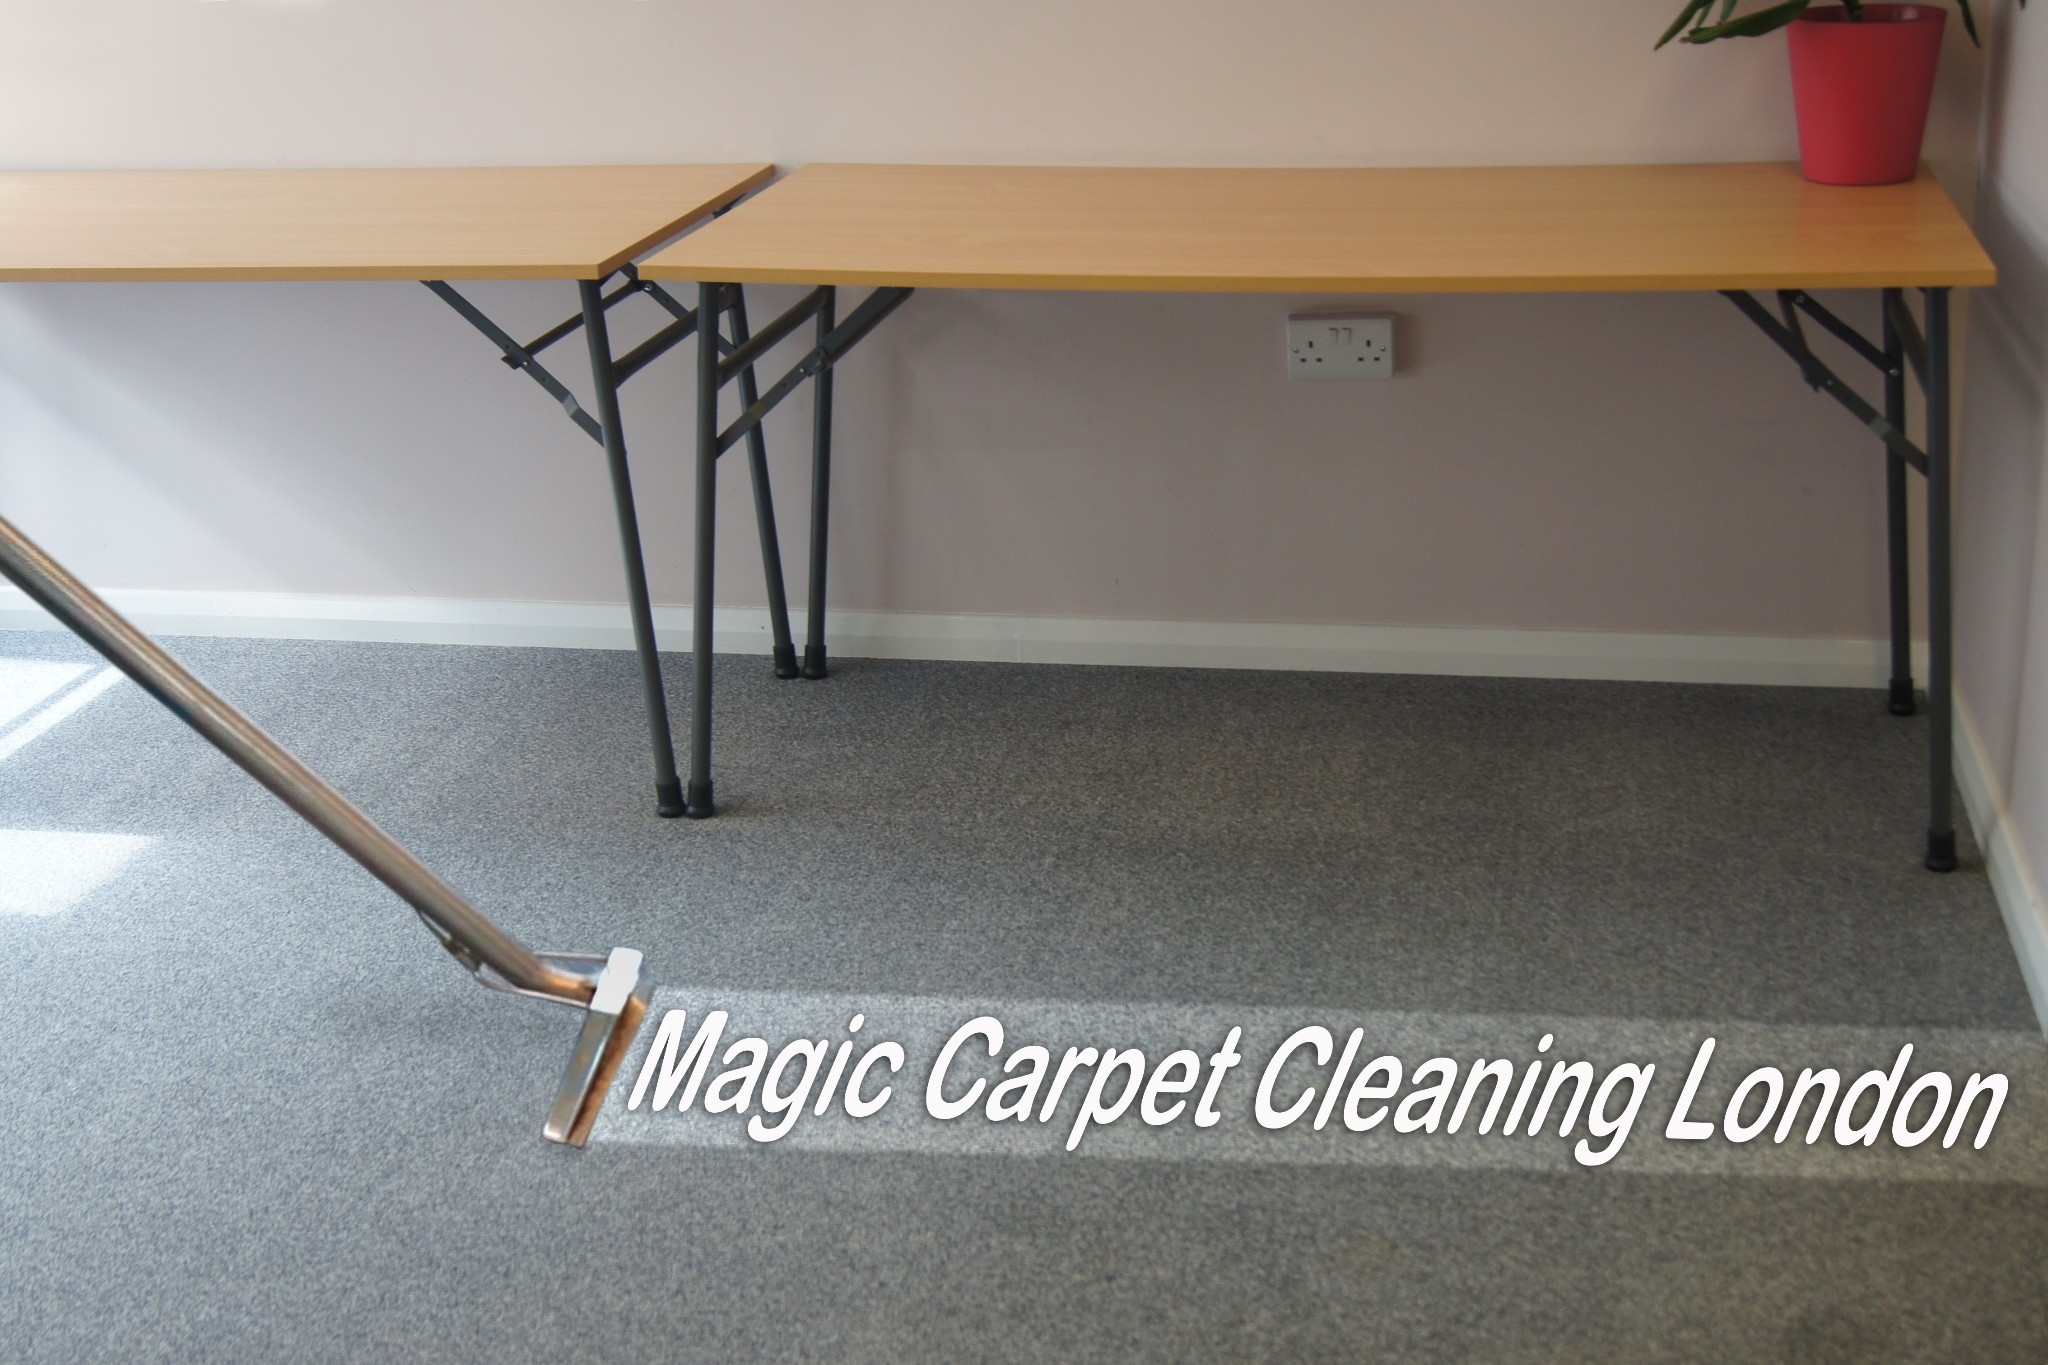 Magic Carpet Cleaning LTD www.magic-carpetcleaning.co.uk